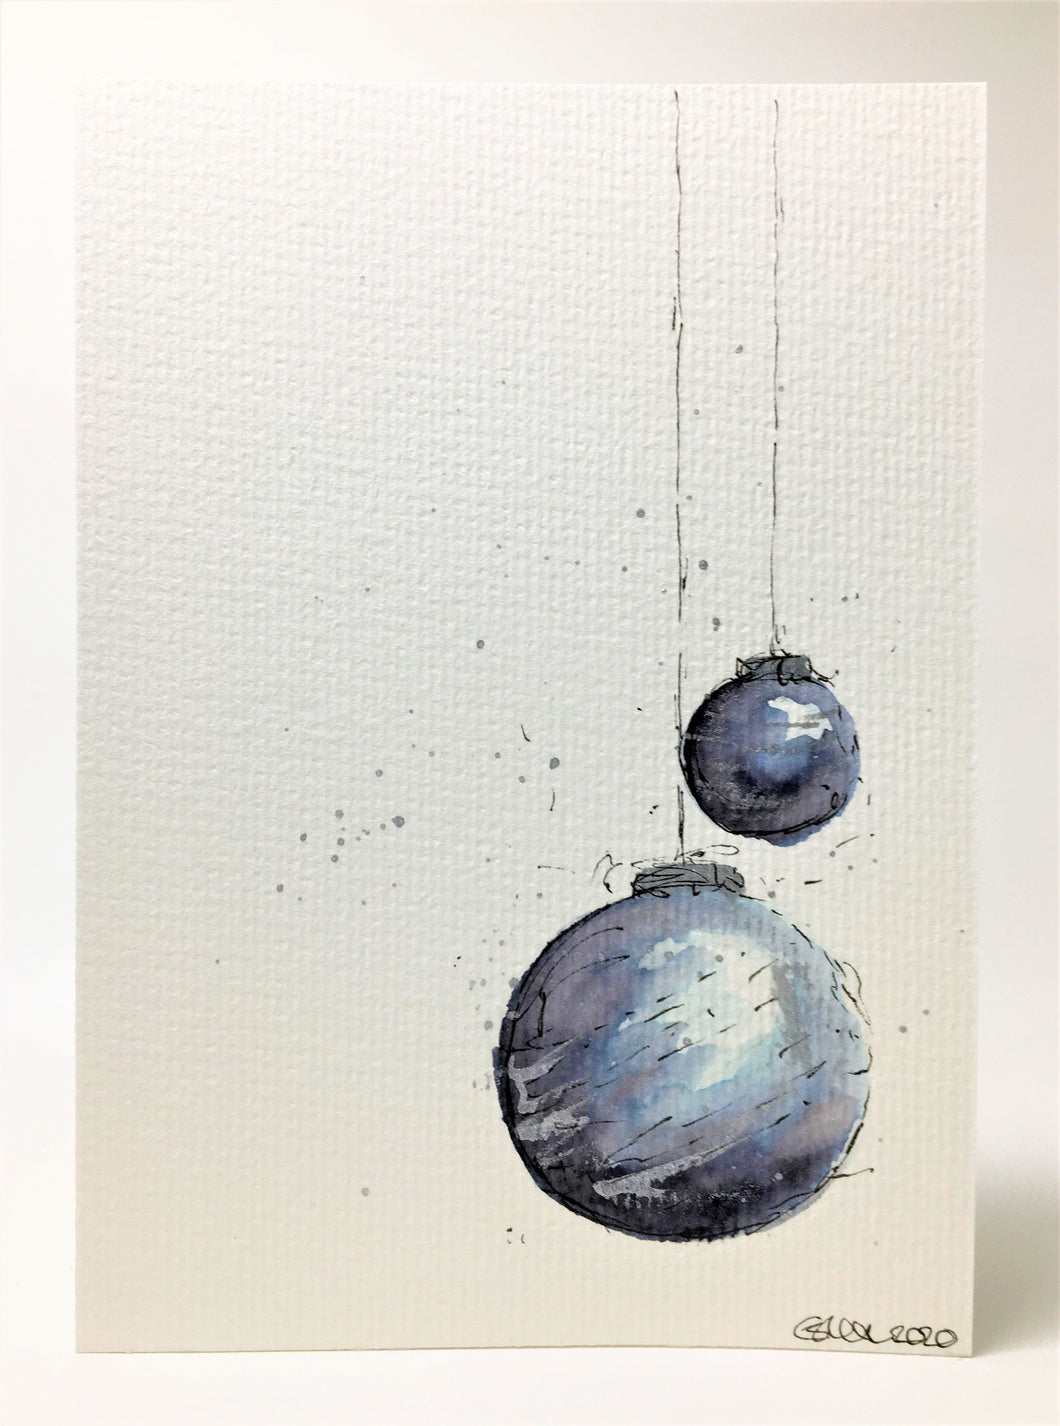 Original Hand Painted Christmas Card - Bauble Collection - Black, Grey, Blue and Silver Baubles